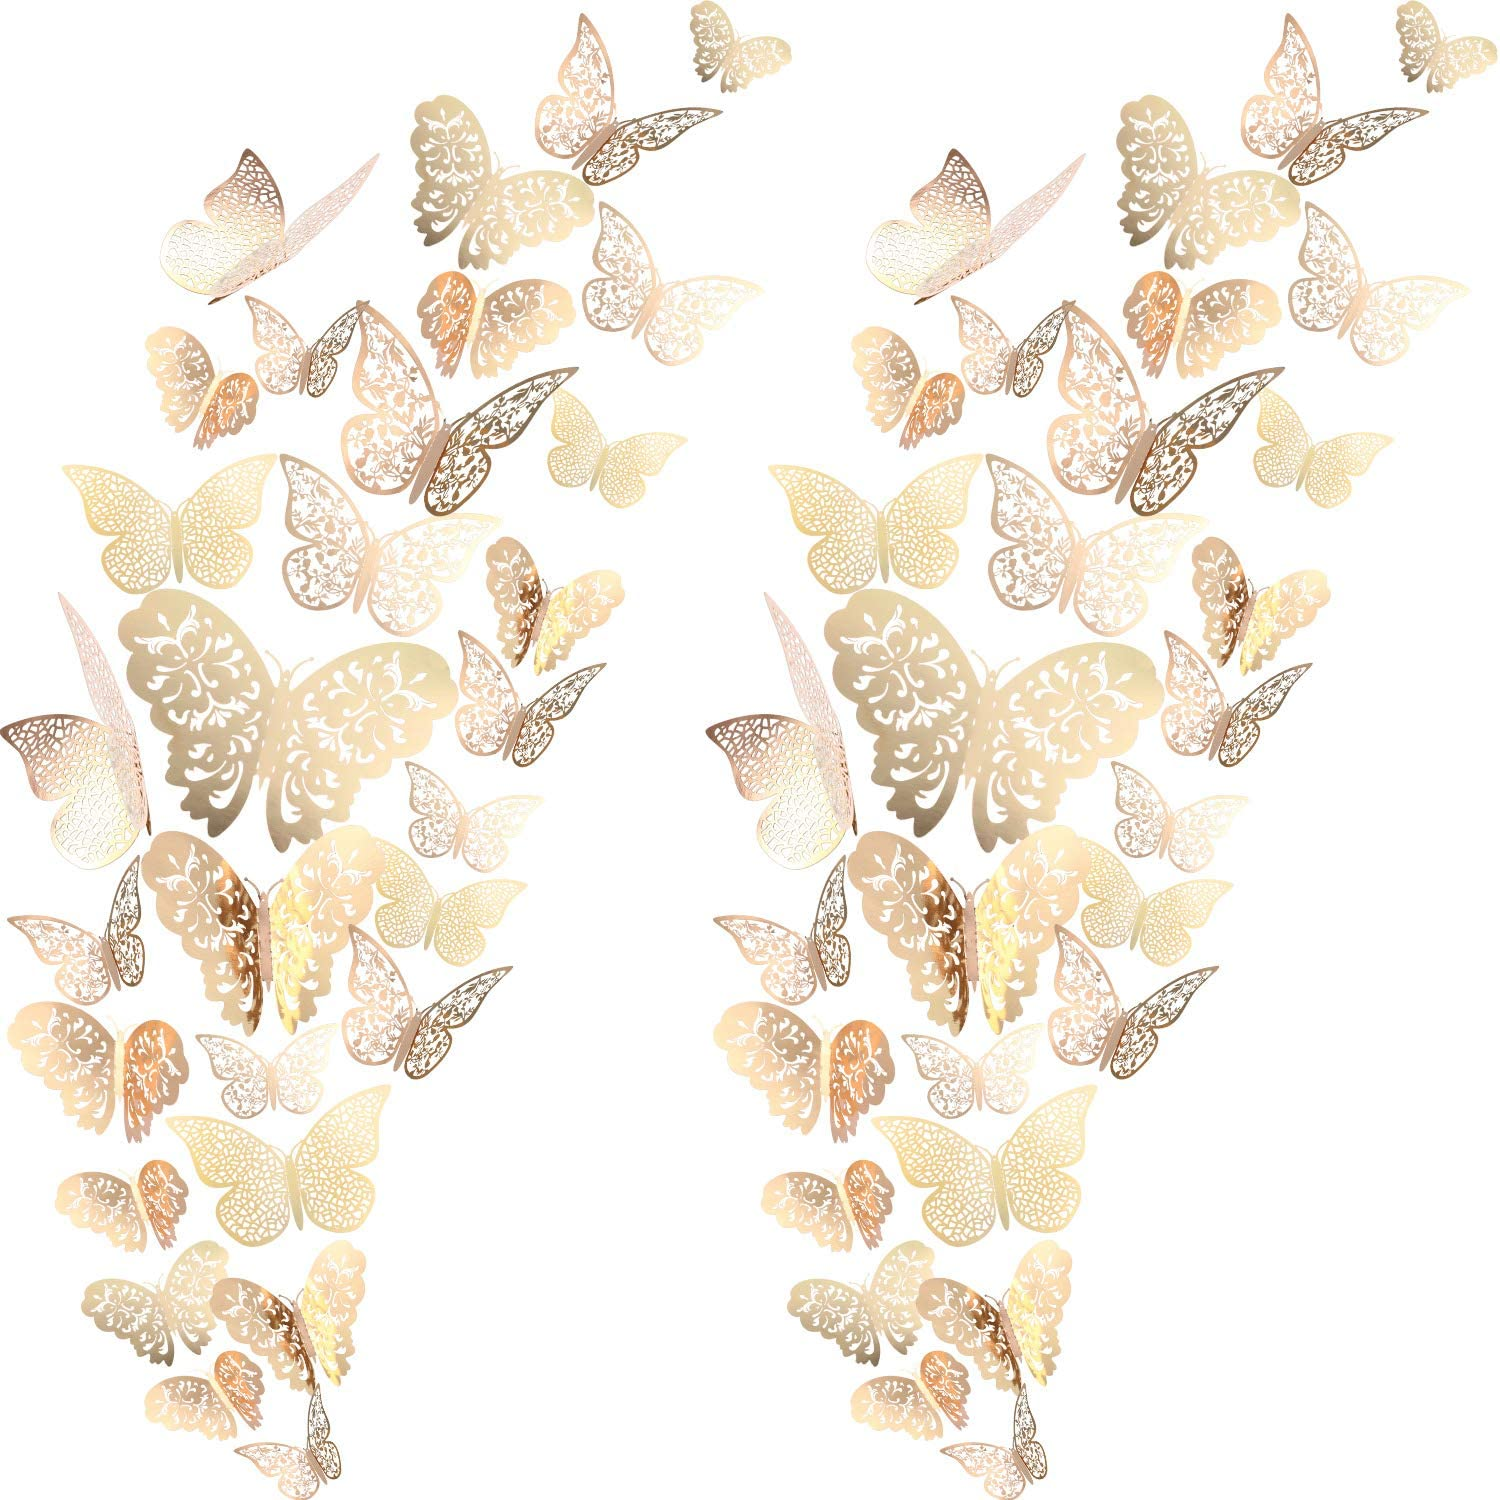 72 Pieces 3D Butterfly Wall Decals Sticker Wall Decal Decor Art Decorations Sticker Set 3 Sizes for Room Home Nursery Classroom Offices Kids Girl Boy Bedroom Bathroom Living Room Decor(Champagne Gold)